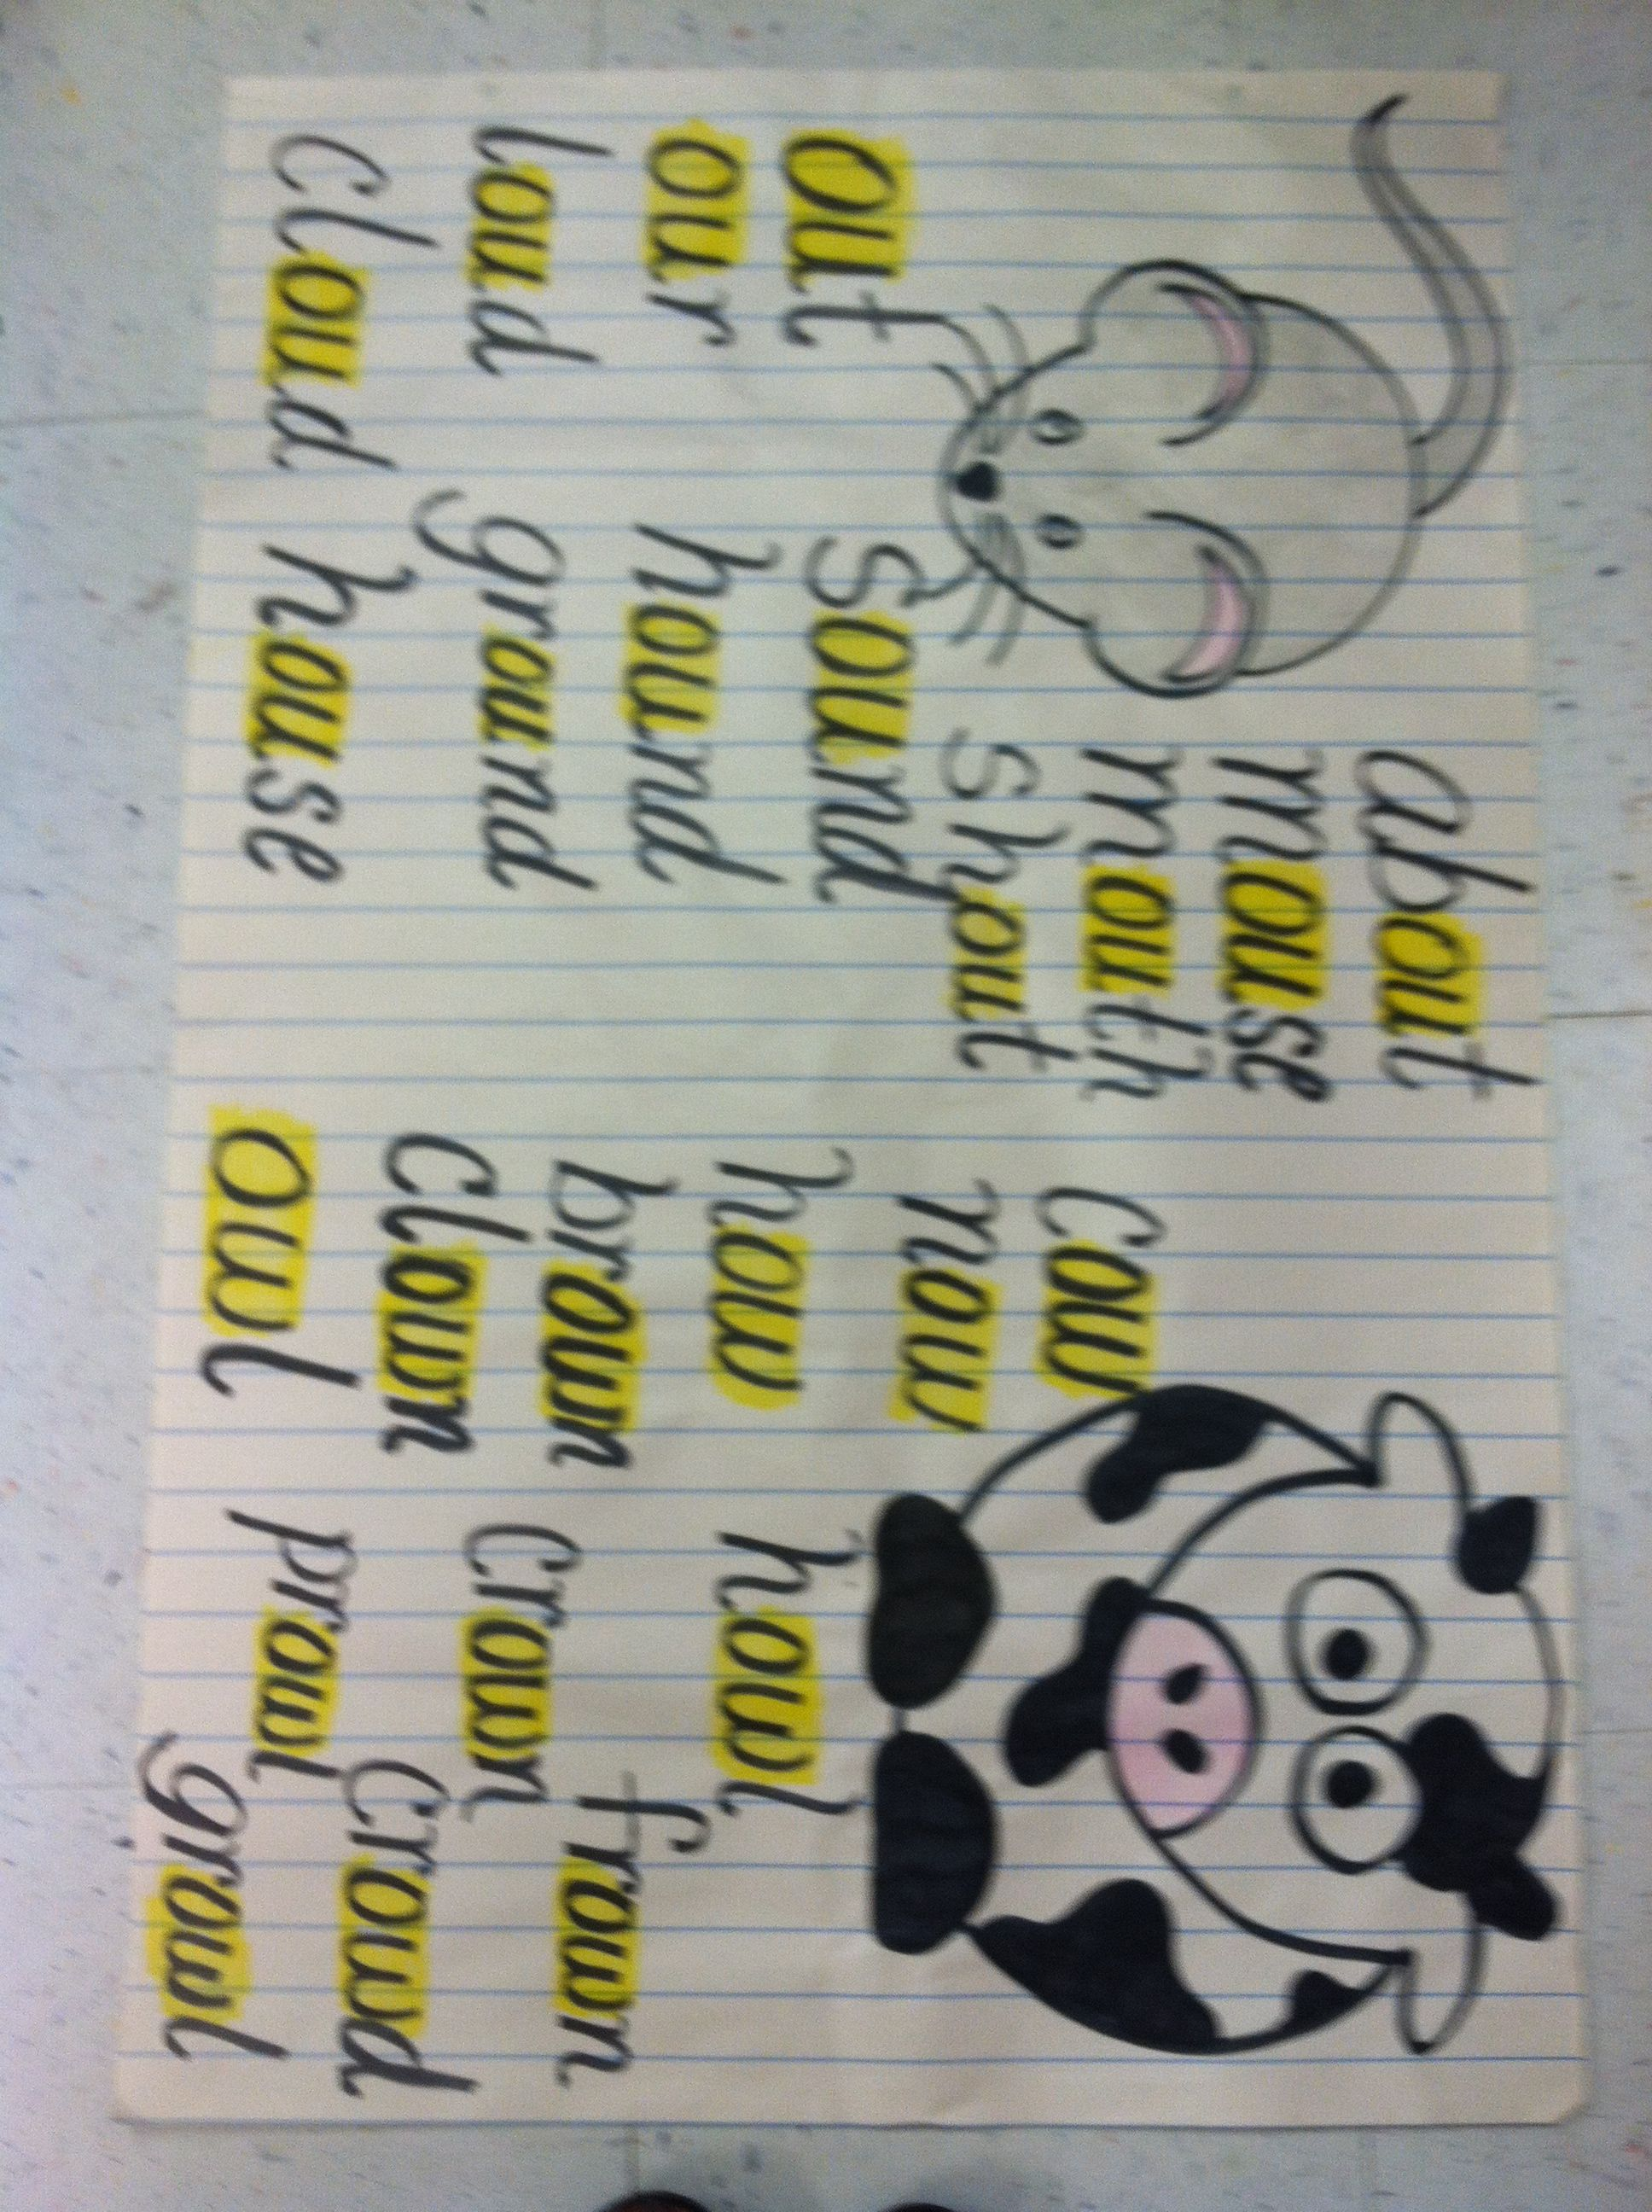 Ow Amp Ou Word Study Anchor Chart